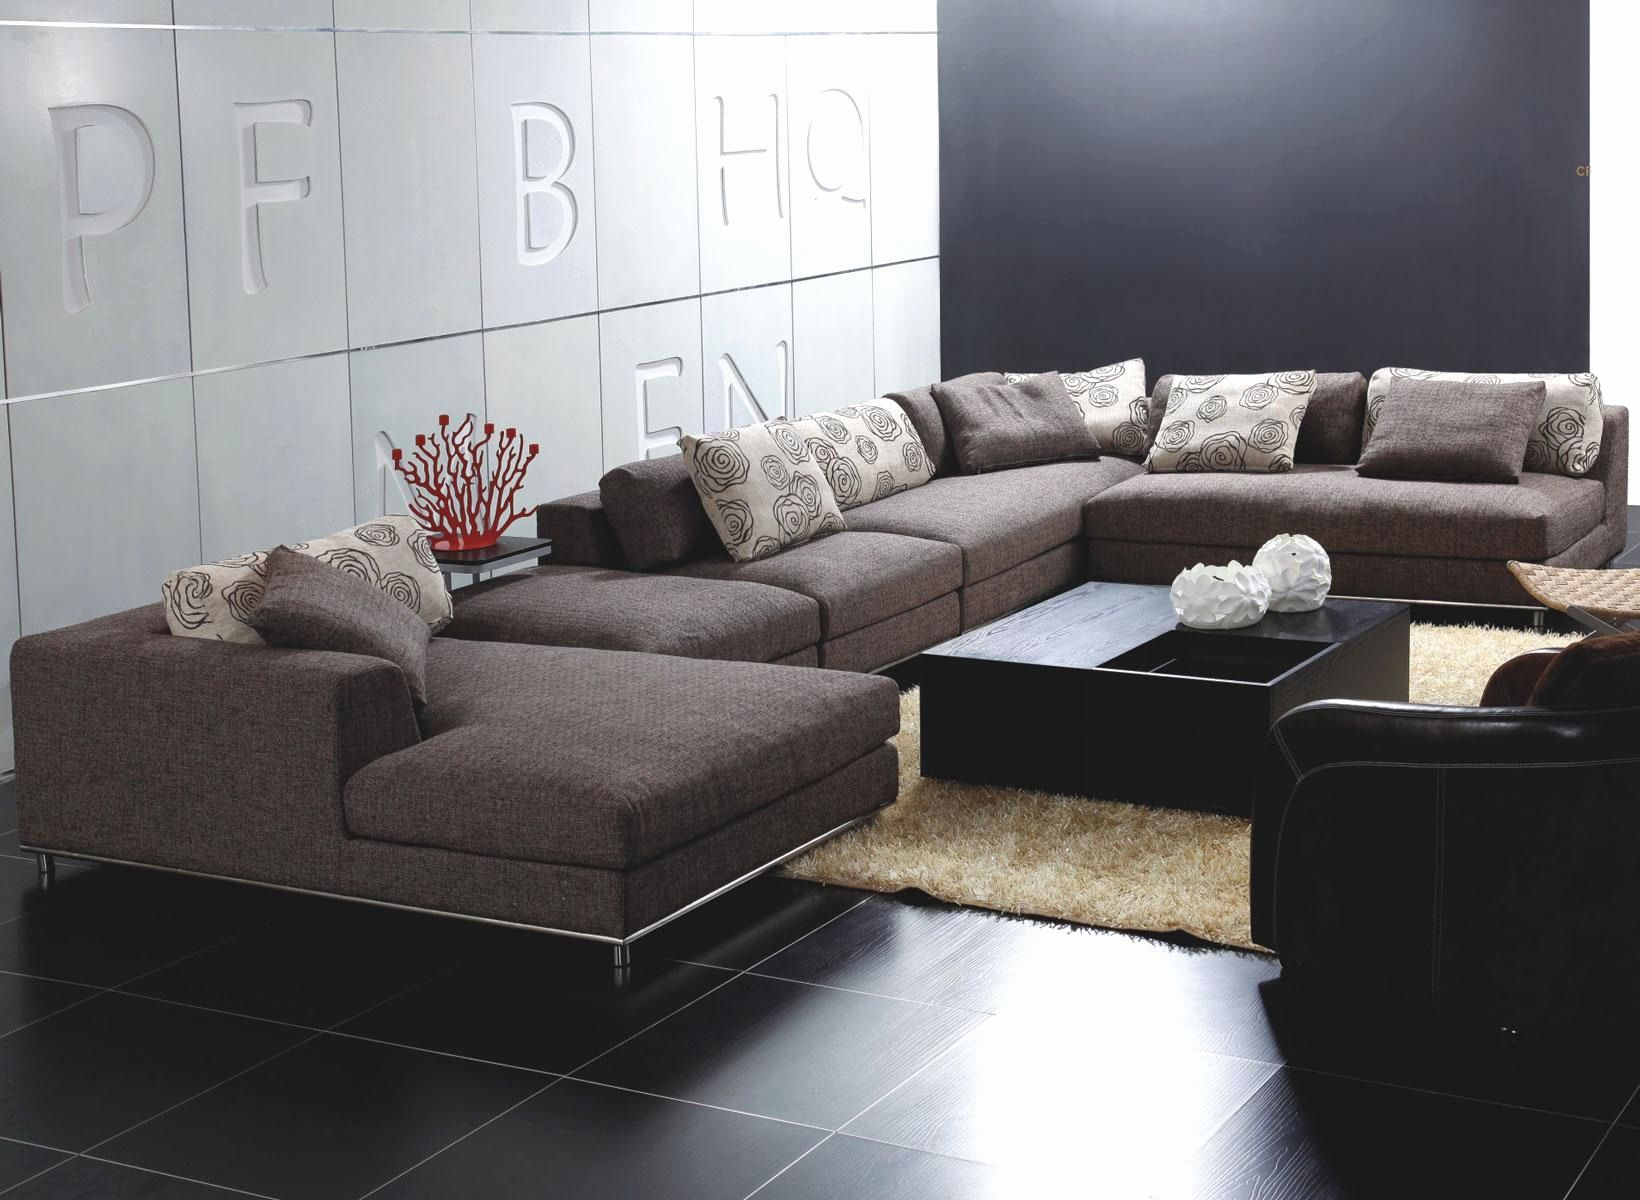 Awesome Fabric Contemporary Sofas Shot Decoration Contemporary Sectional Sofa And Co Modern Sofa Sectional Contemporary Sectional Sofa Oversized Sectional Sofa